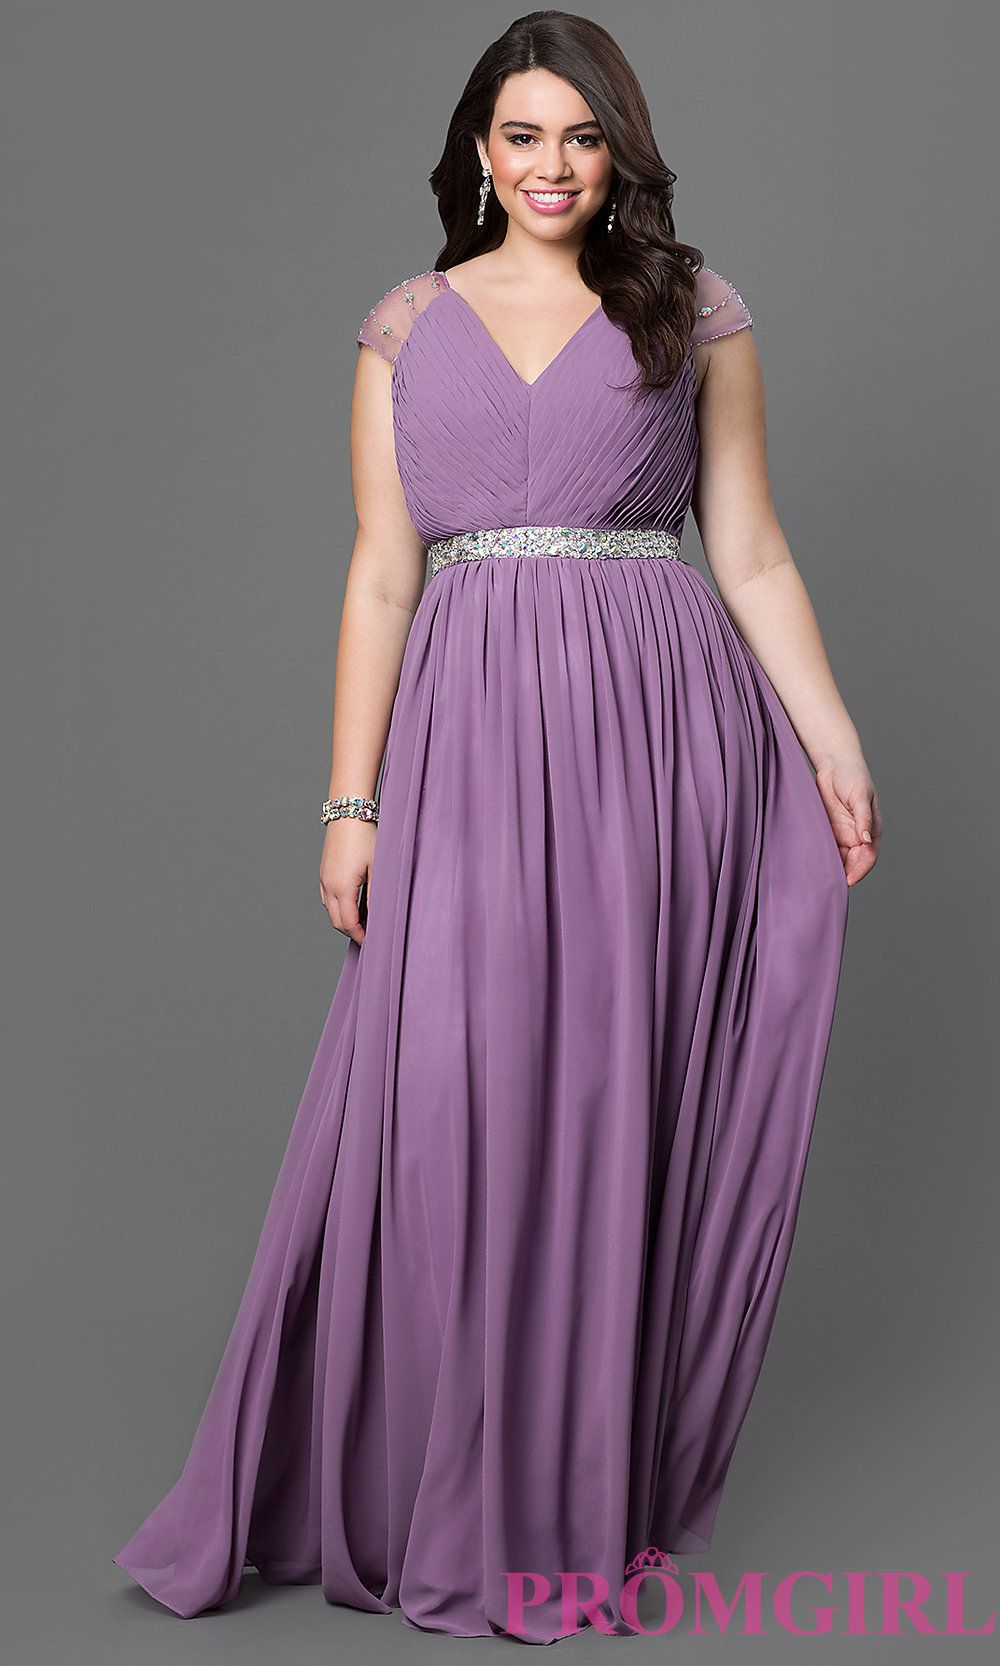 I like style dqp from promgirl do you like dresses for